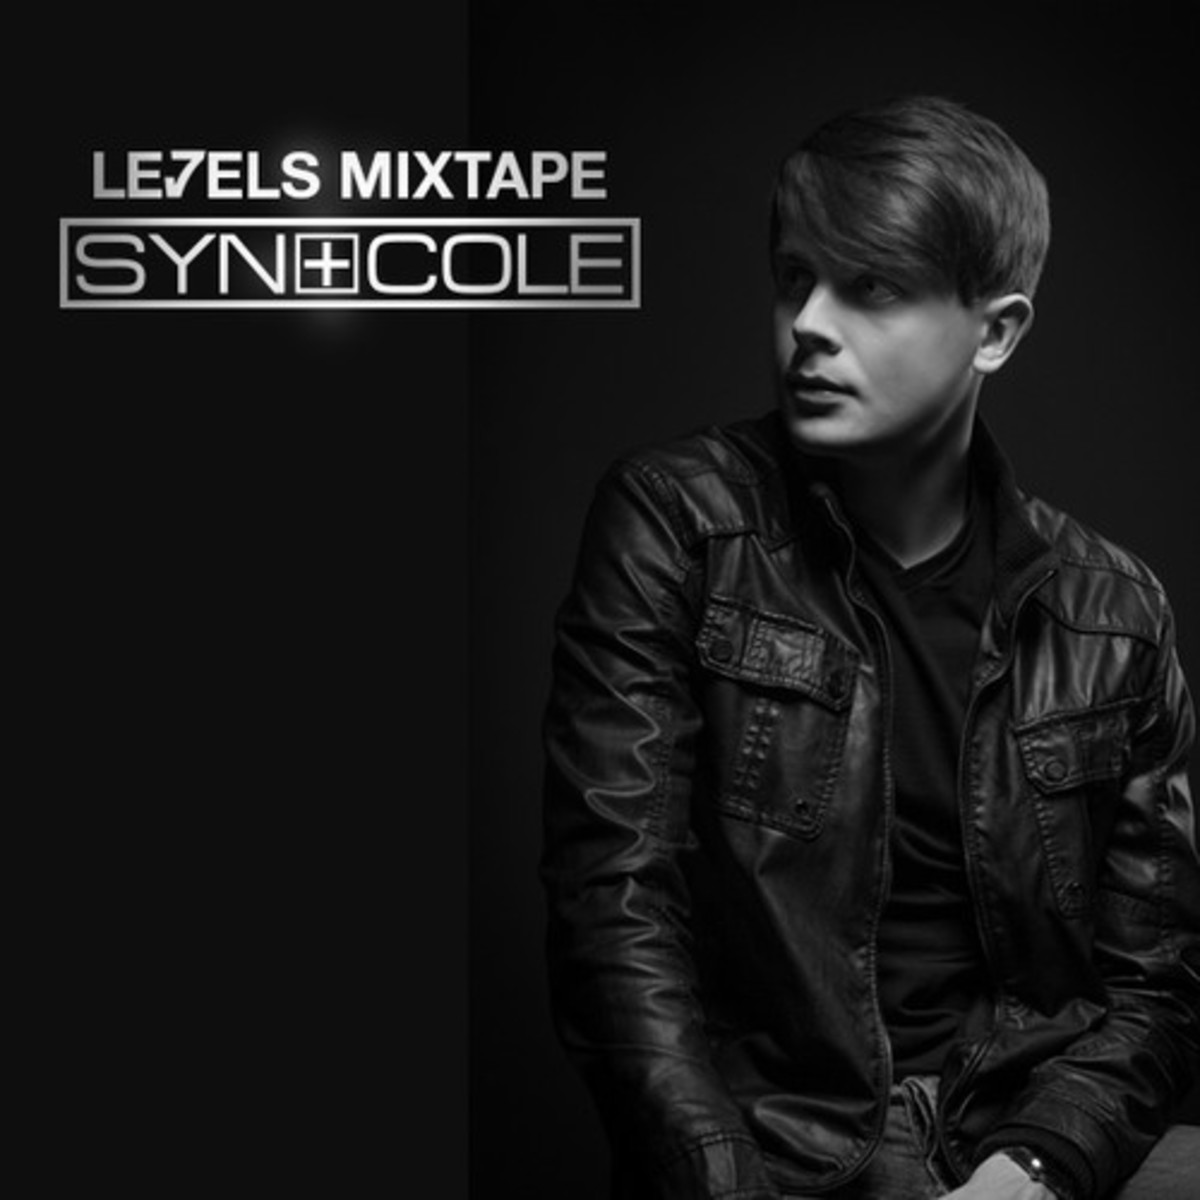 Syn Cole Drops Le7els Mixtape 006; Miami 82 Remix EP Out Now- New Electronic Music